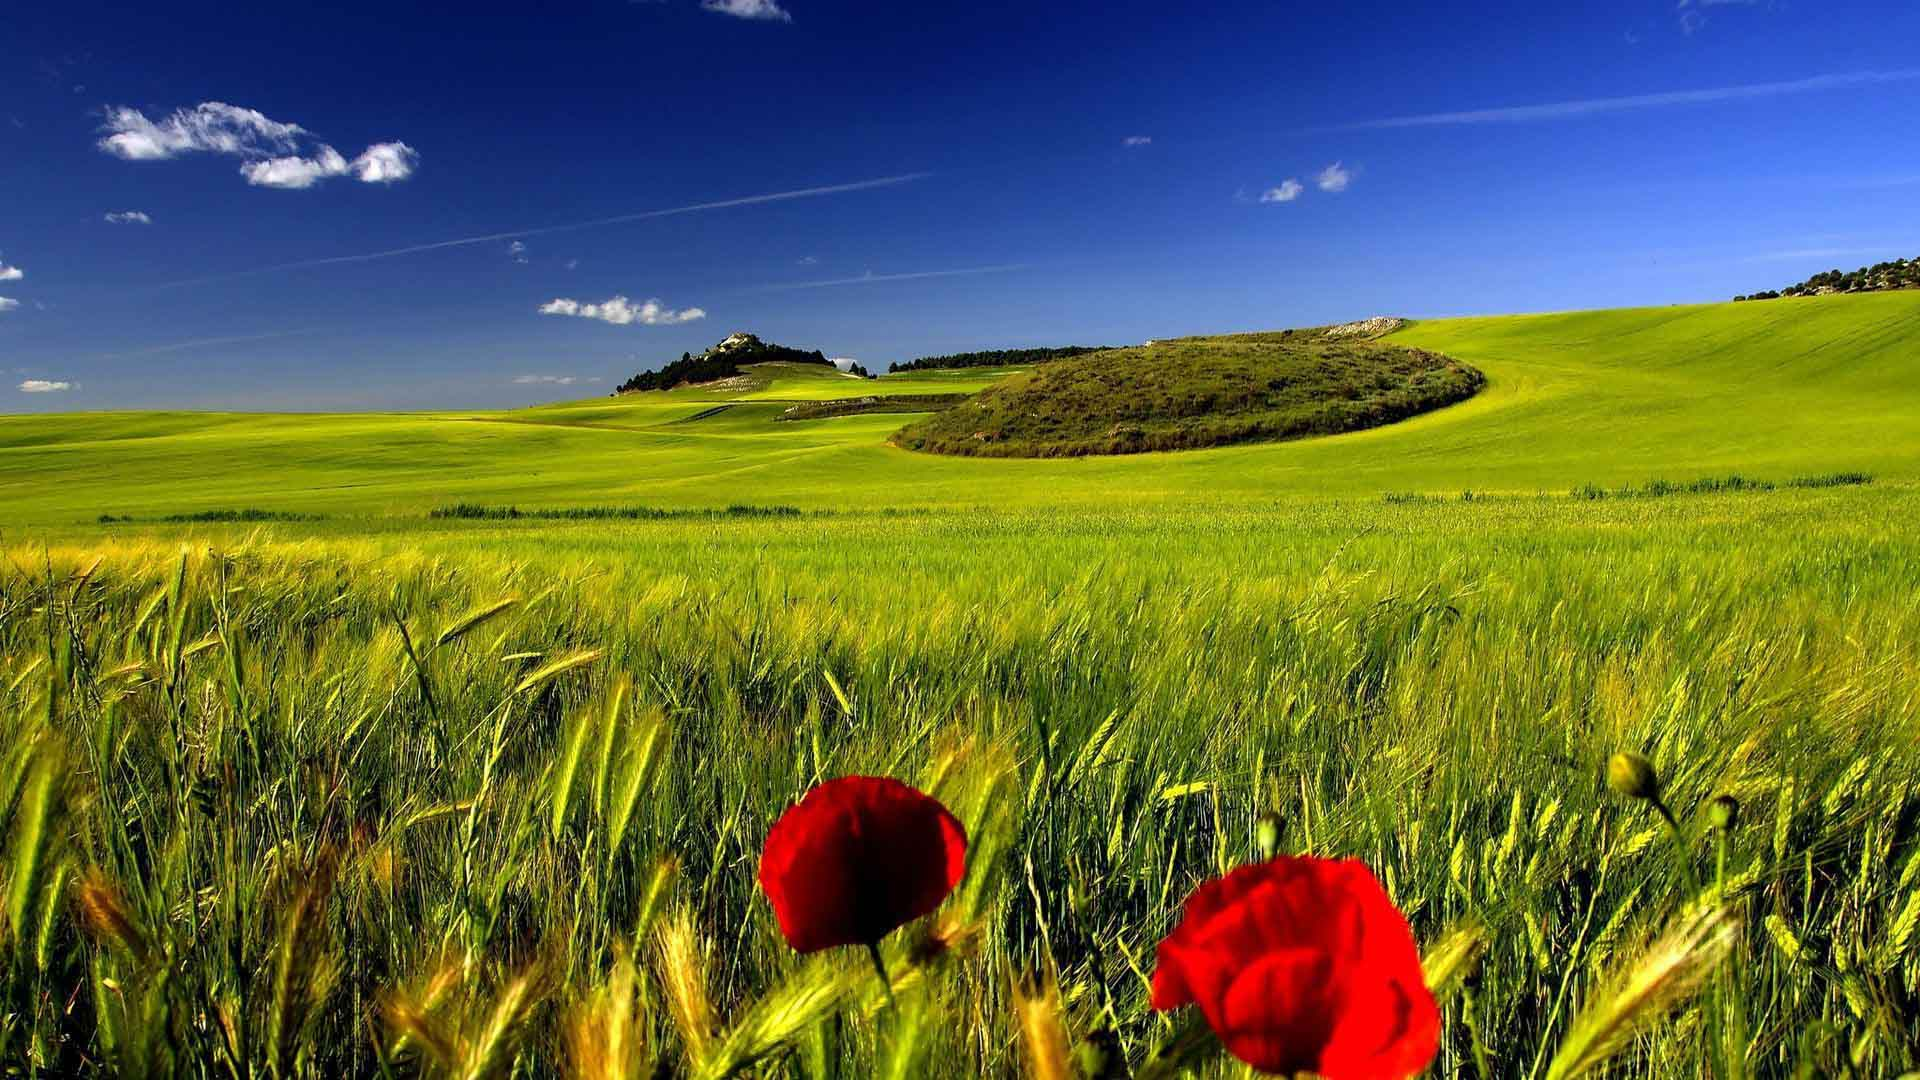 Poppies cornfied landscape